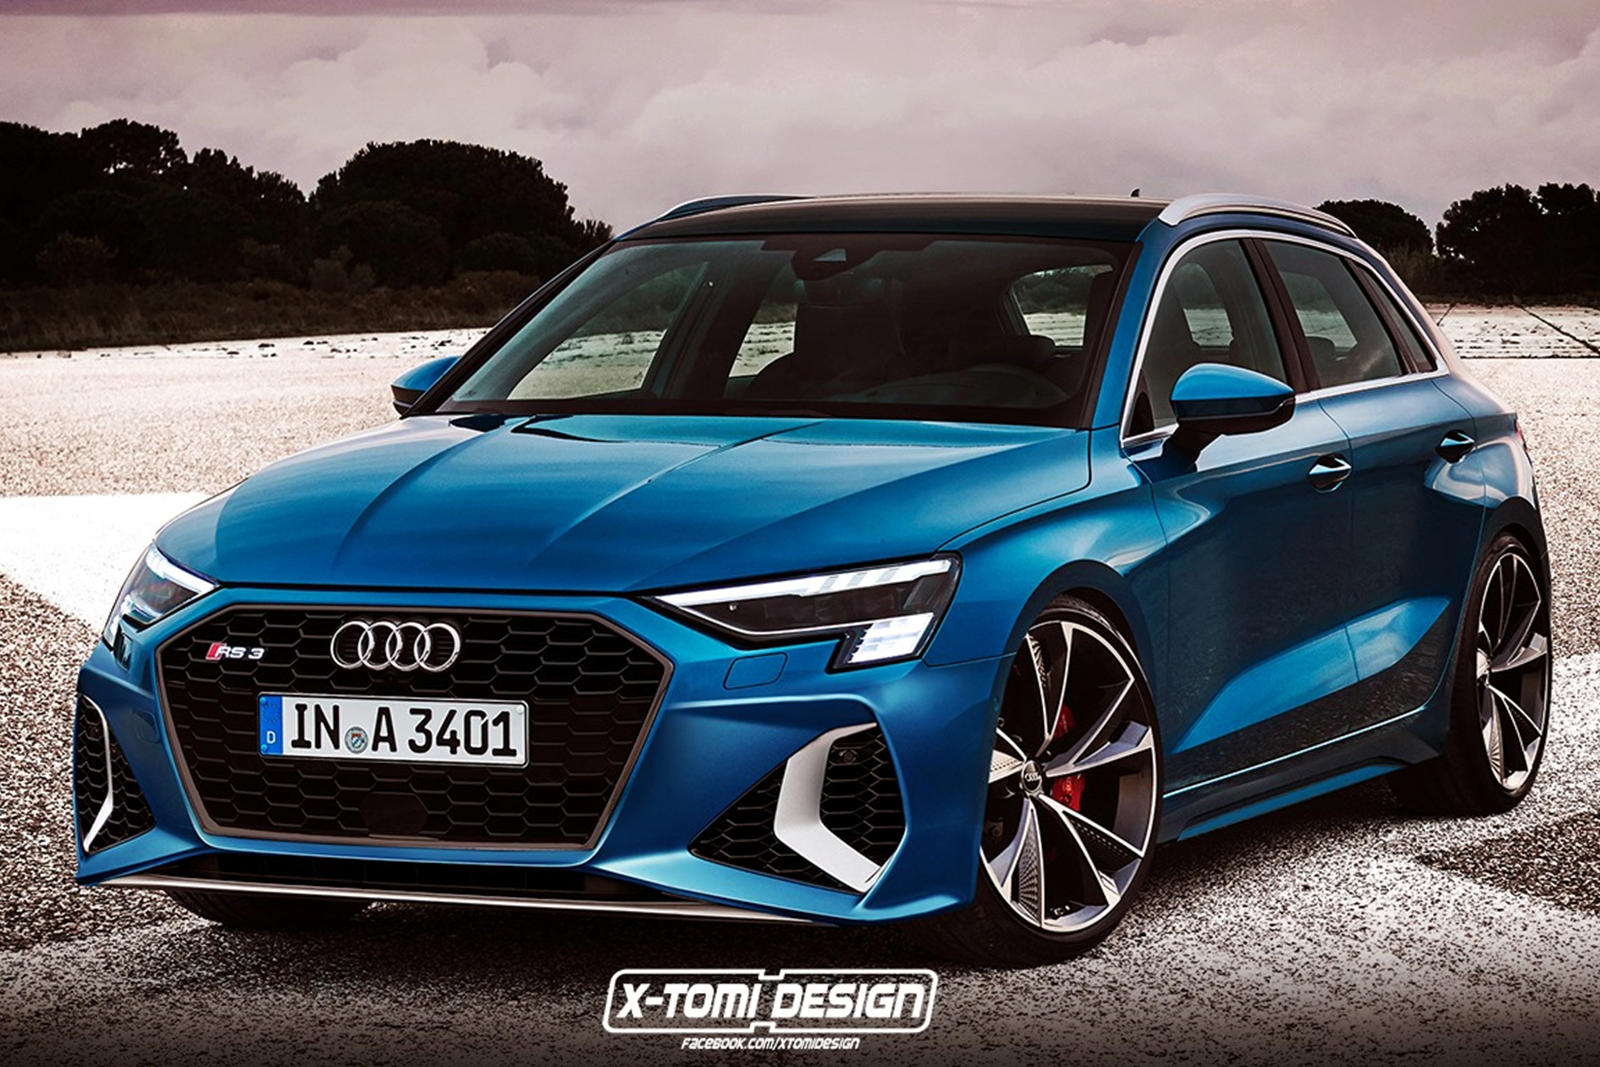 We Hope The 2021 Audi RS3 Looks This Good | CarBuzz